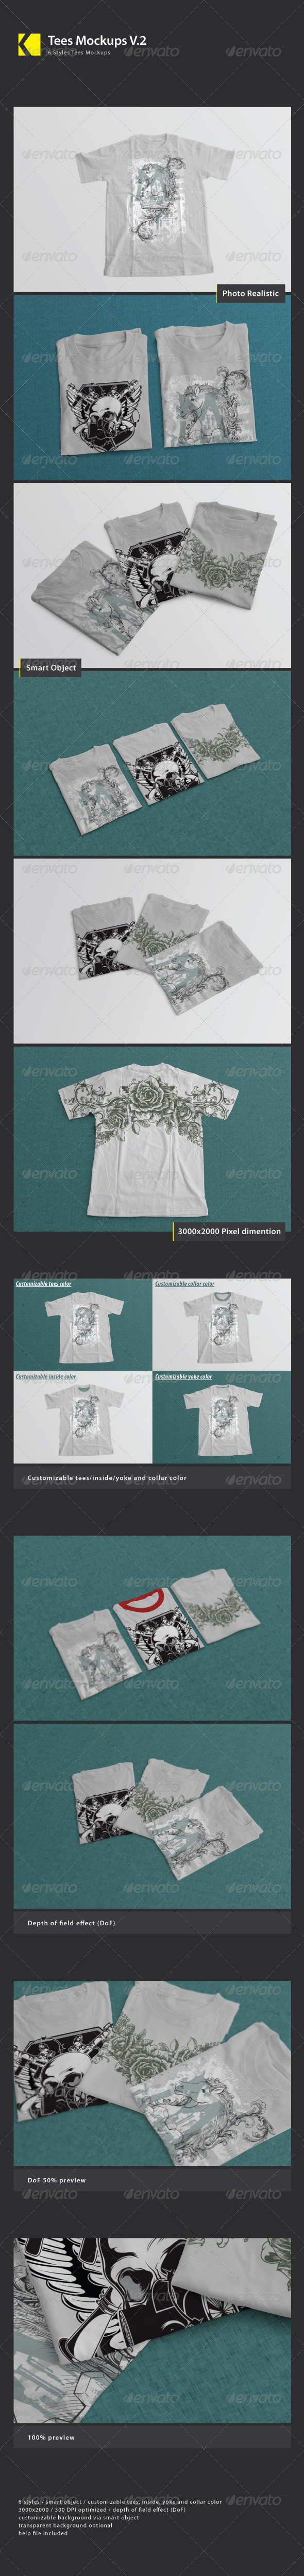 GraphicRiver Tees Mock Ups V.2 5304919